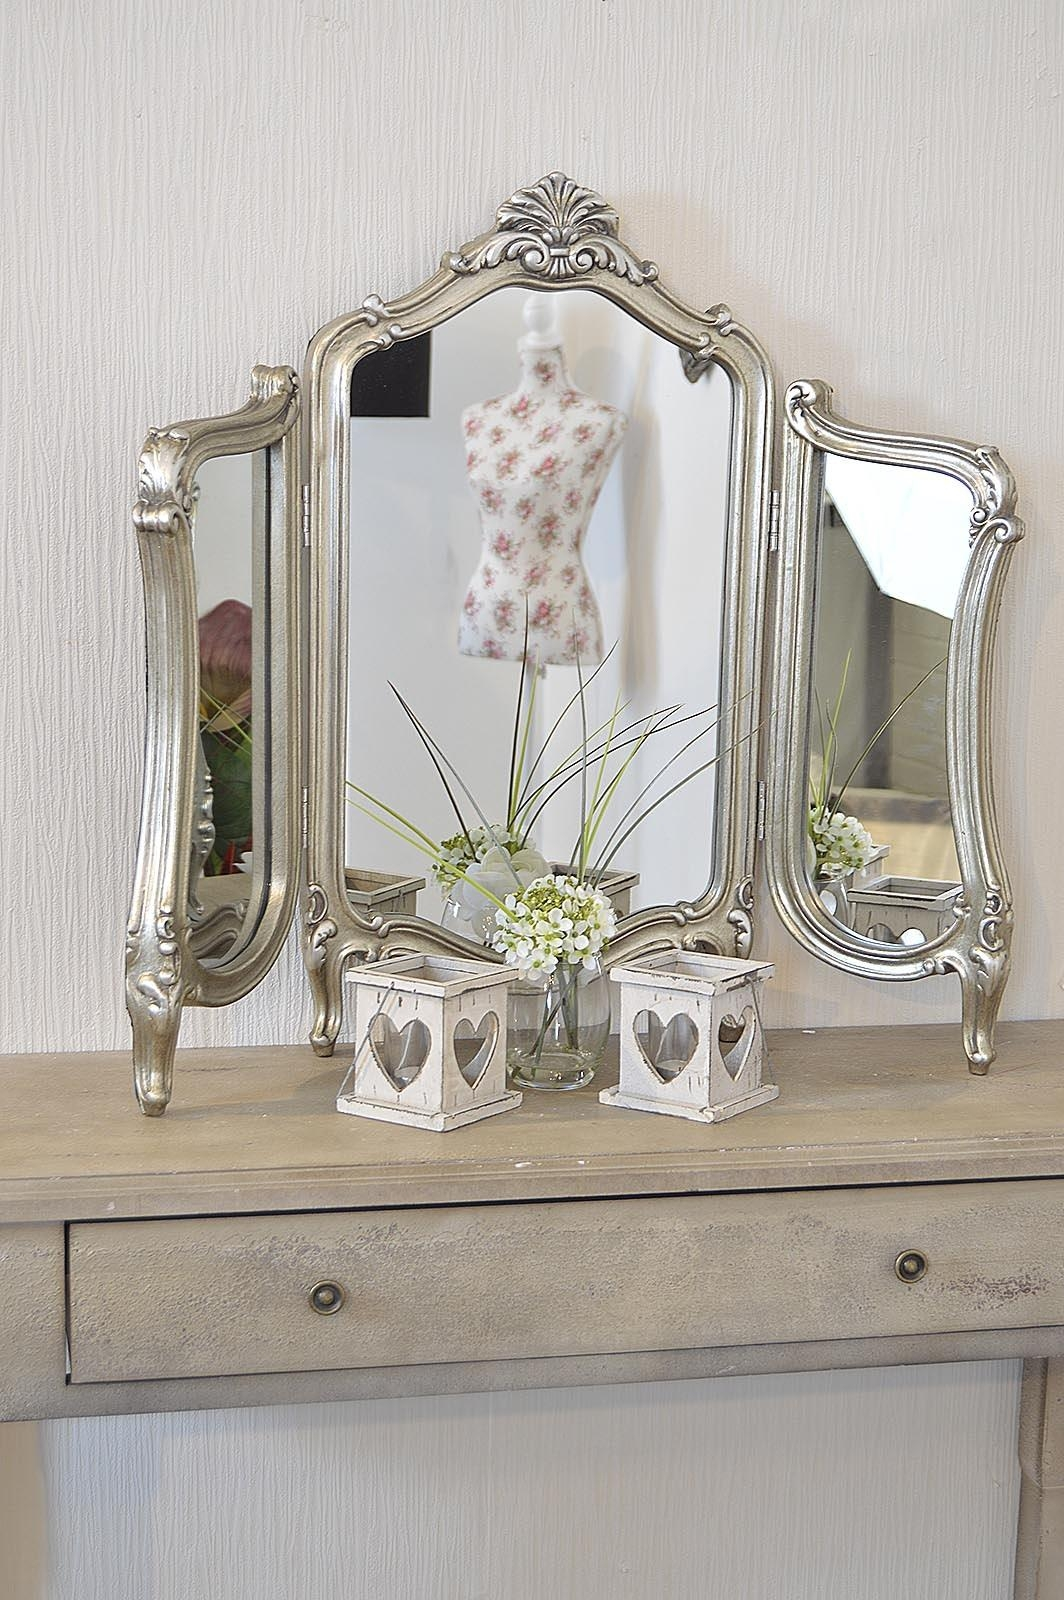 Stunning Antique Design Free Standing Dressing Table Mirror – M315 Intended For Dressing Table Mirrors (Image 15 of 20)